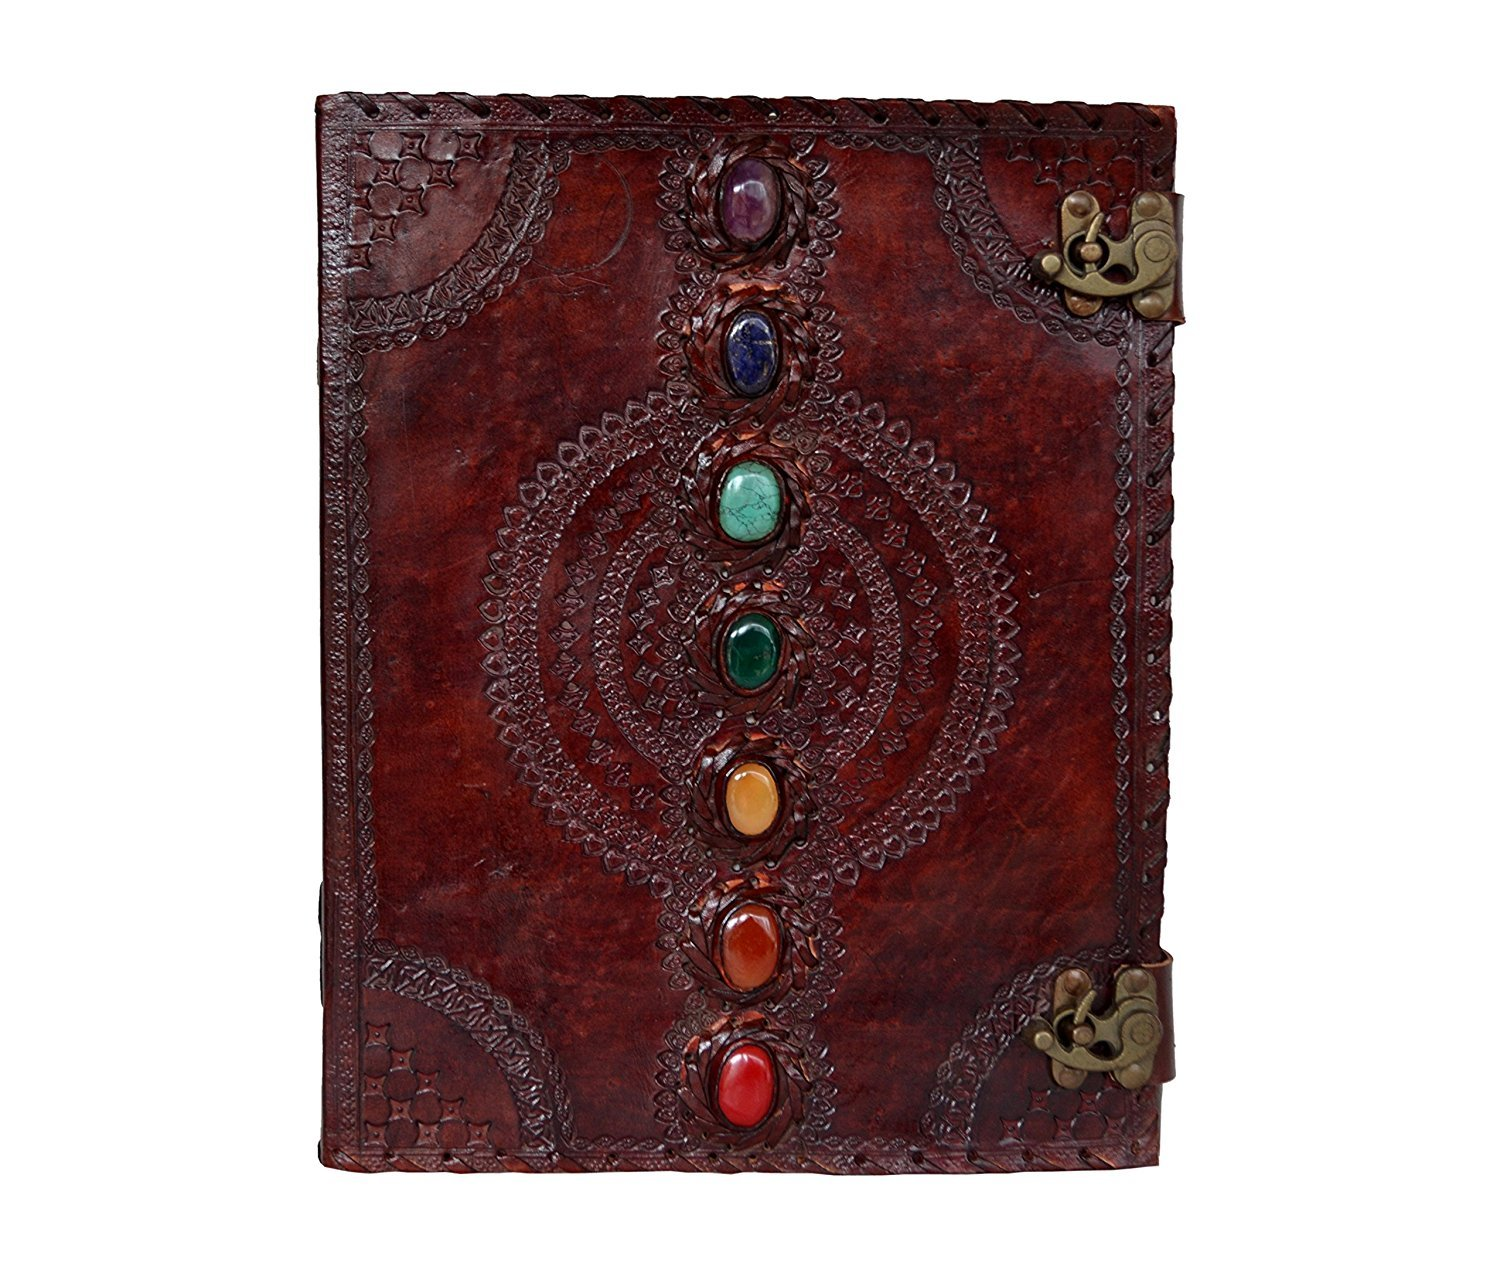 Prastara Leather Journal Book Seven Chakra Medieval Stone Embossed Handmade Book of Shadows Notebook Office Diary College Book Poetry Book Sketch Book 10 x 13 inches